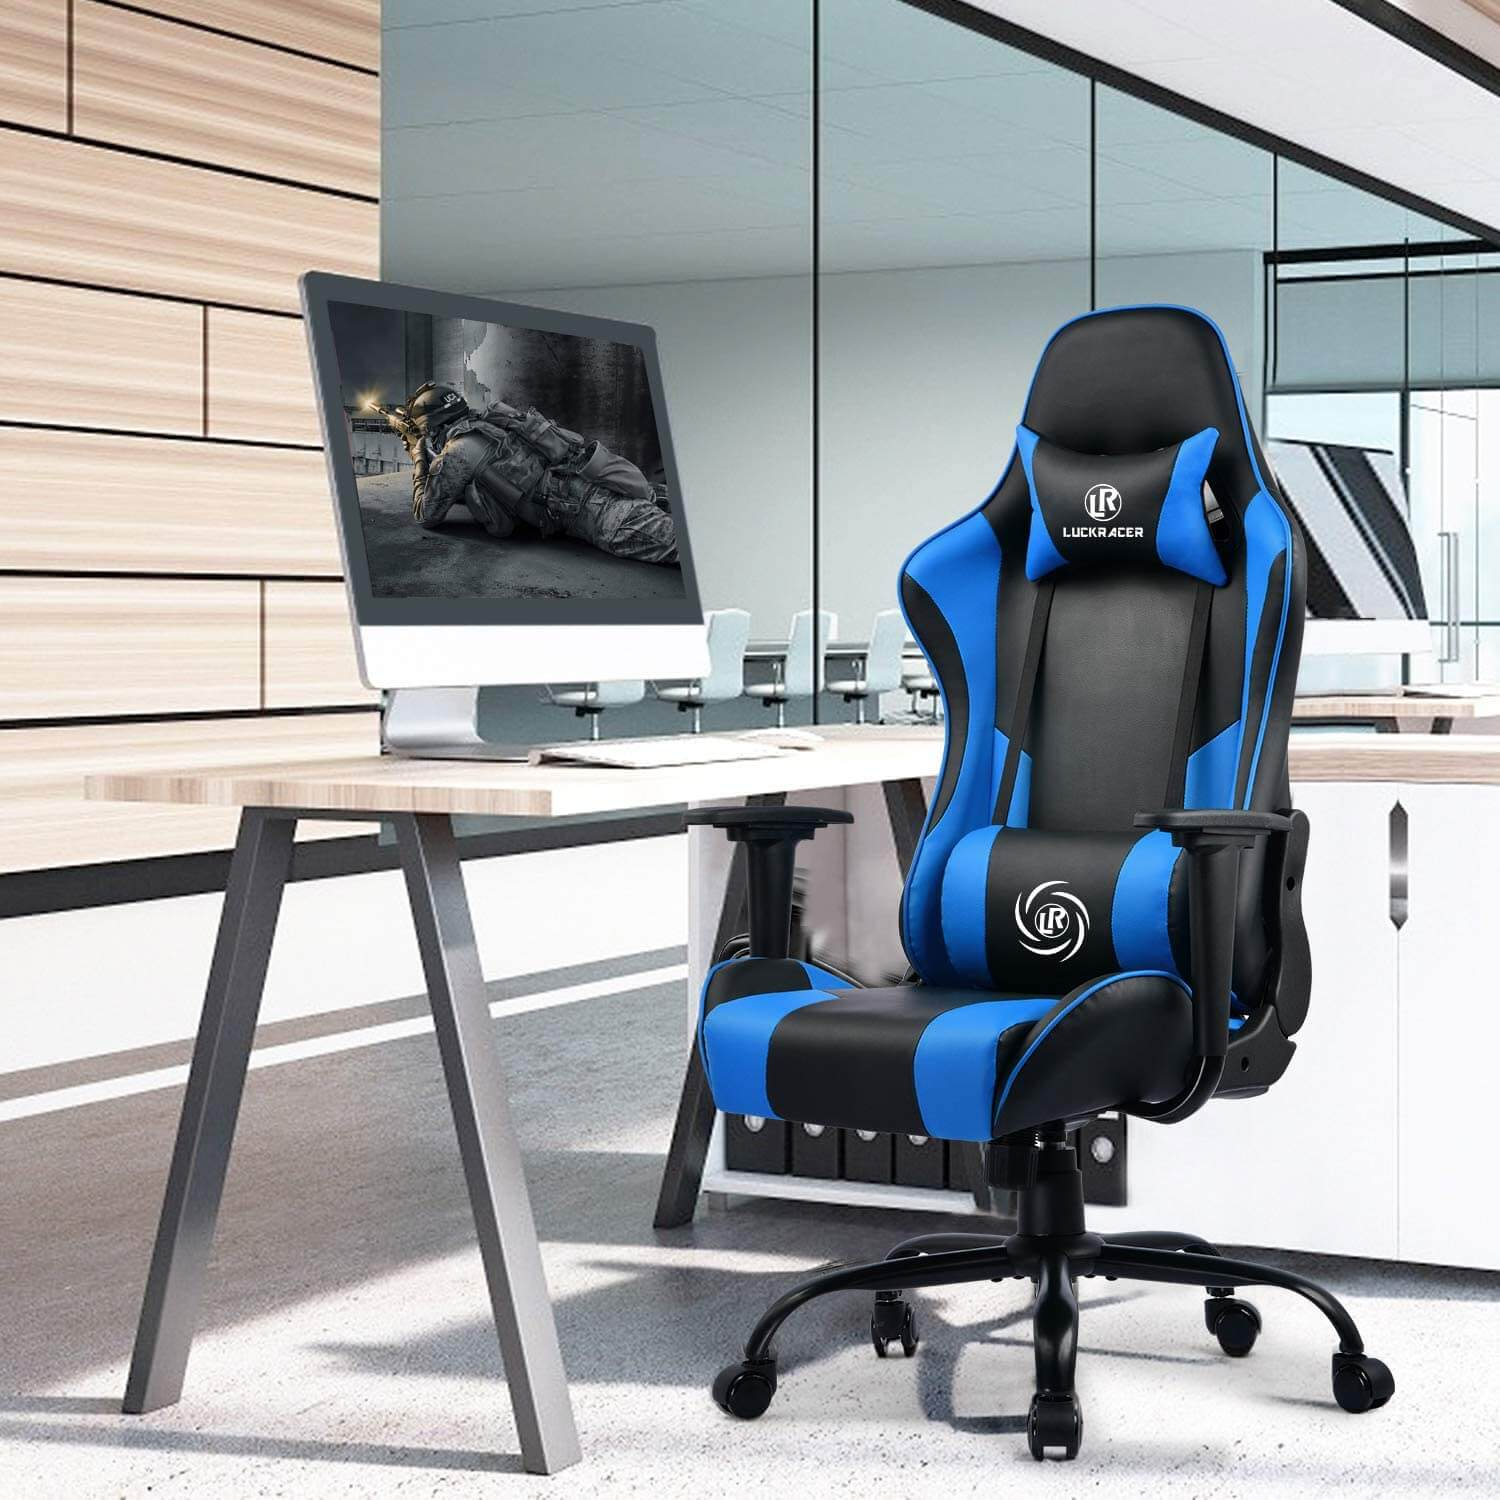 LUCKRACER budget chair with ergonomic design